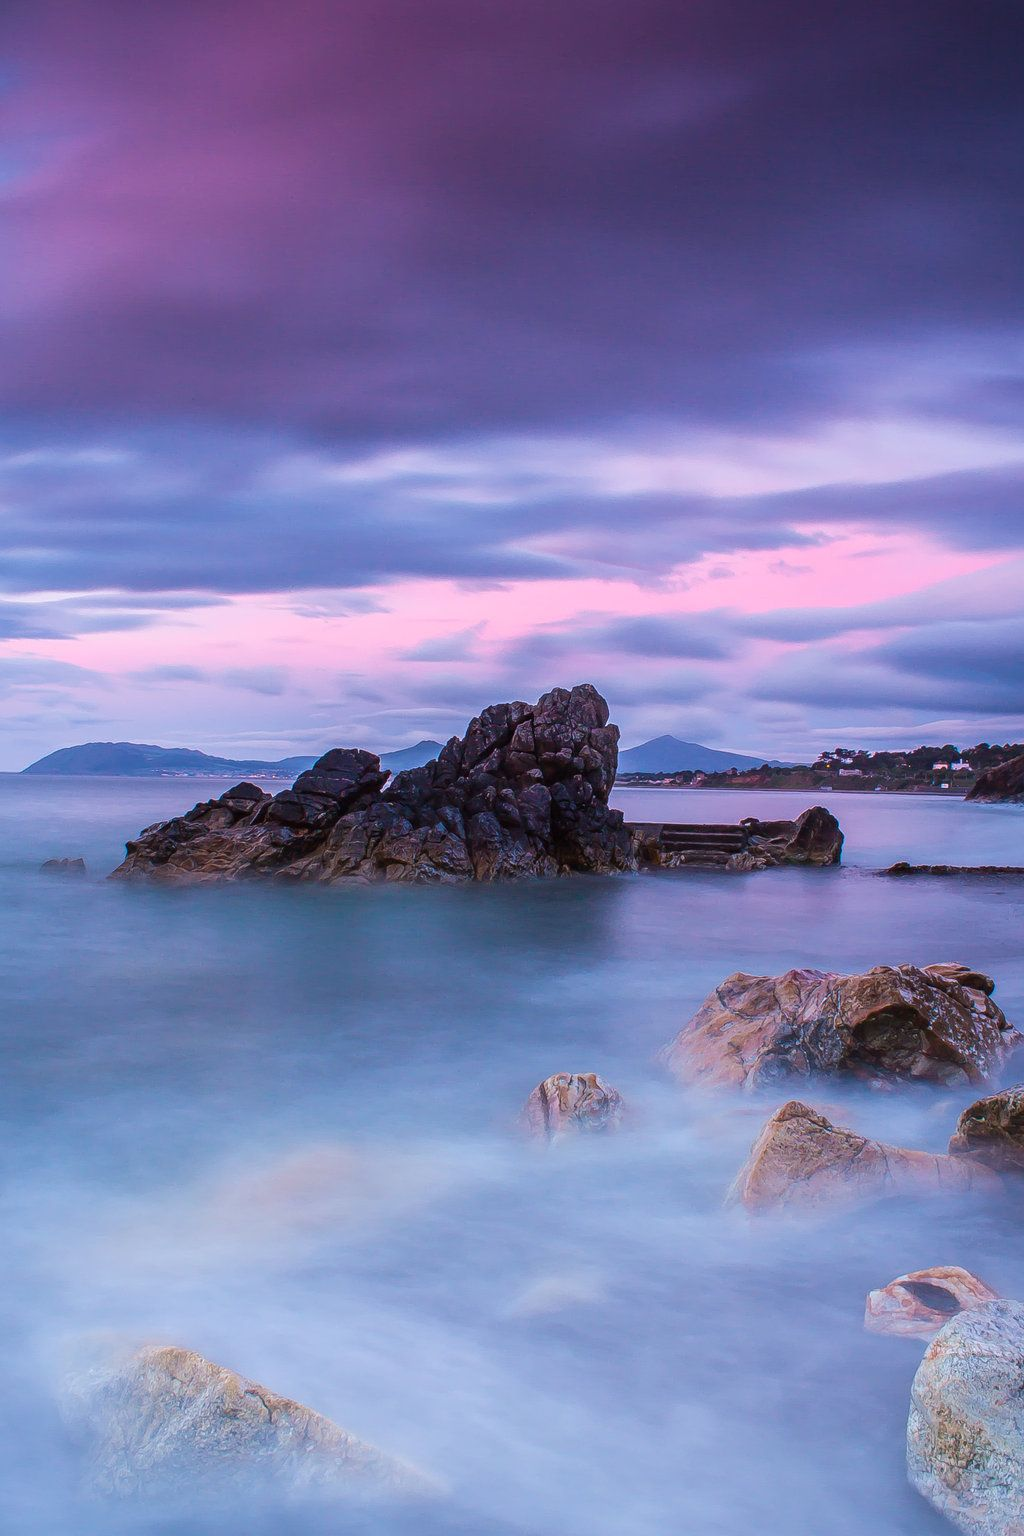 Pink silence by ~GregWan